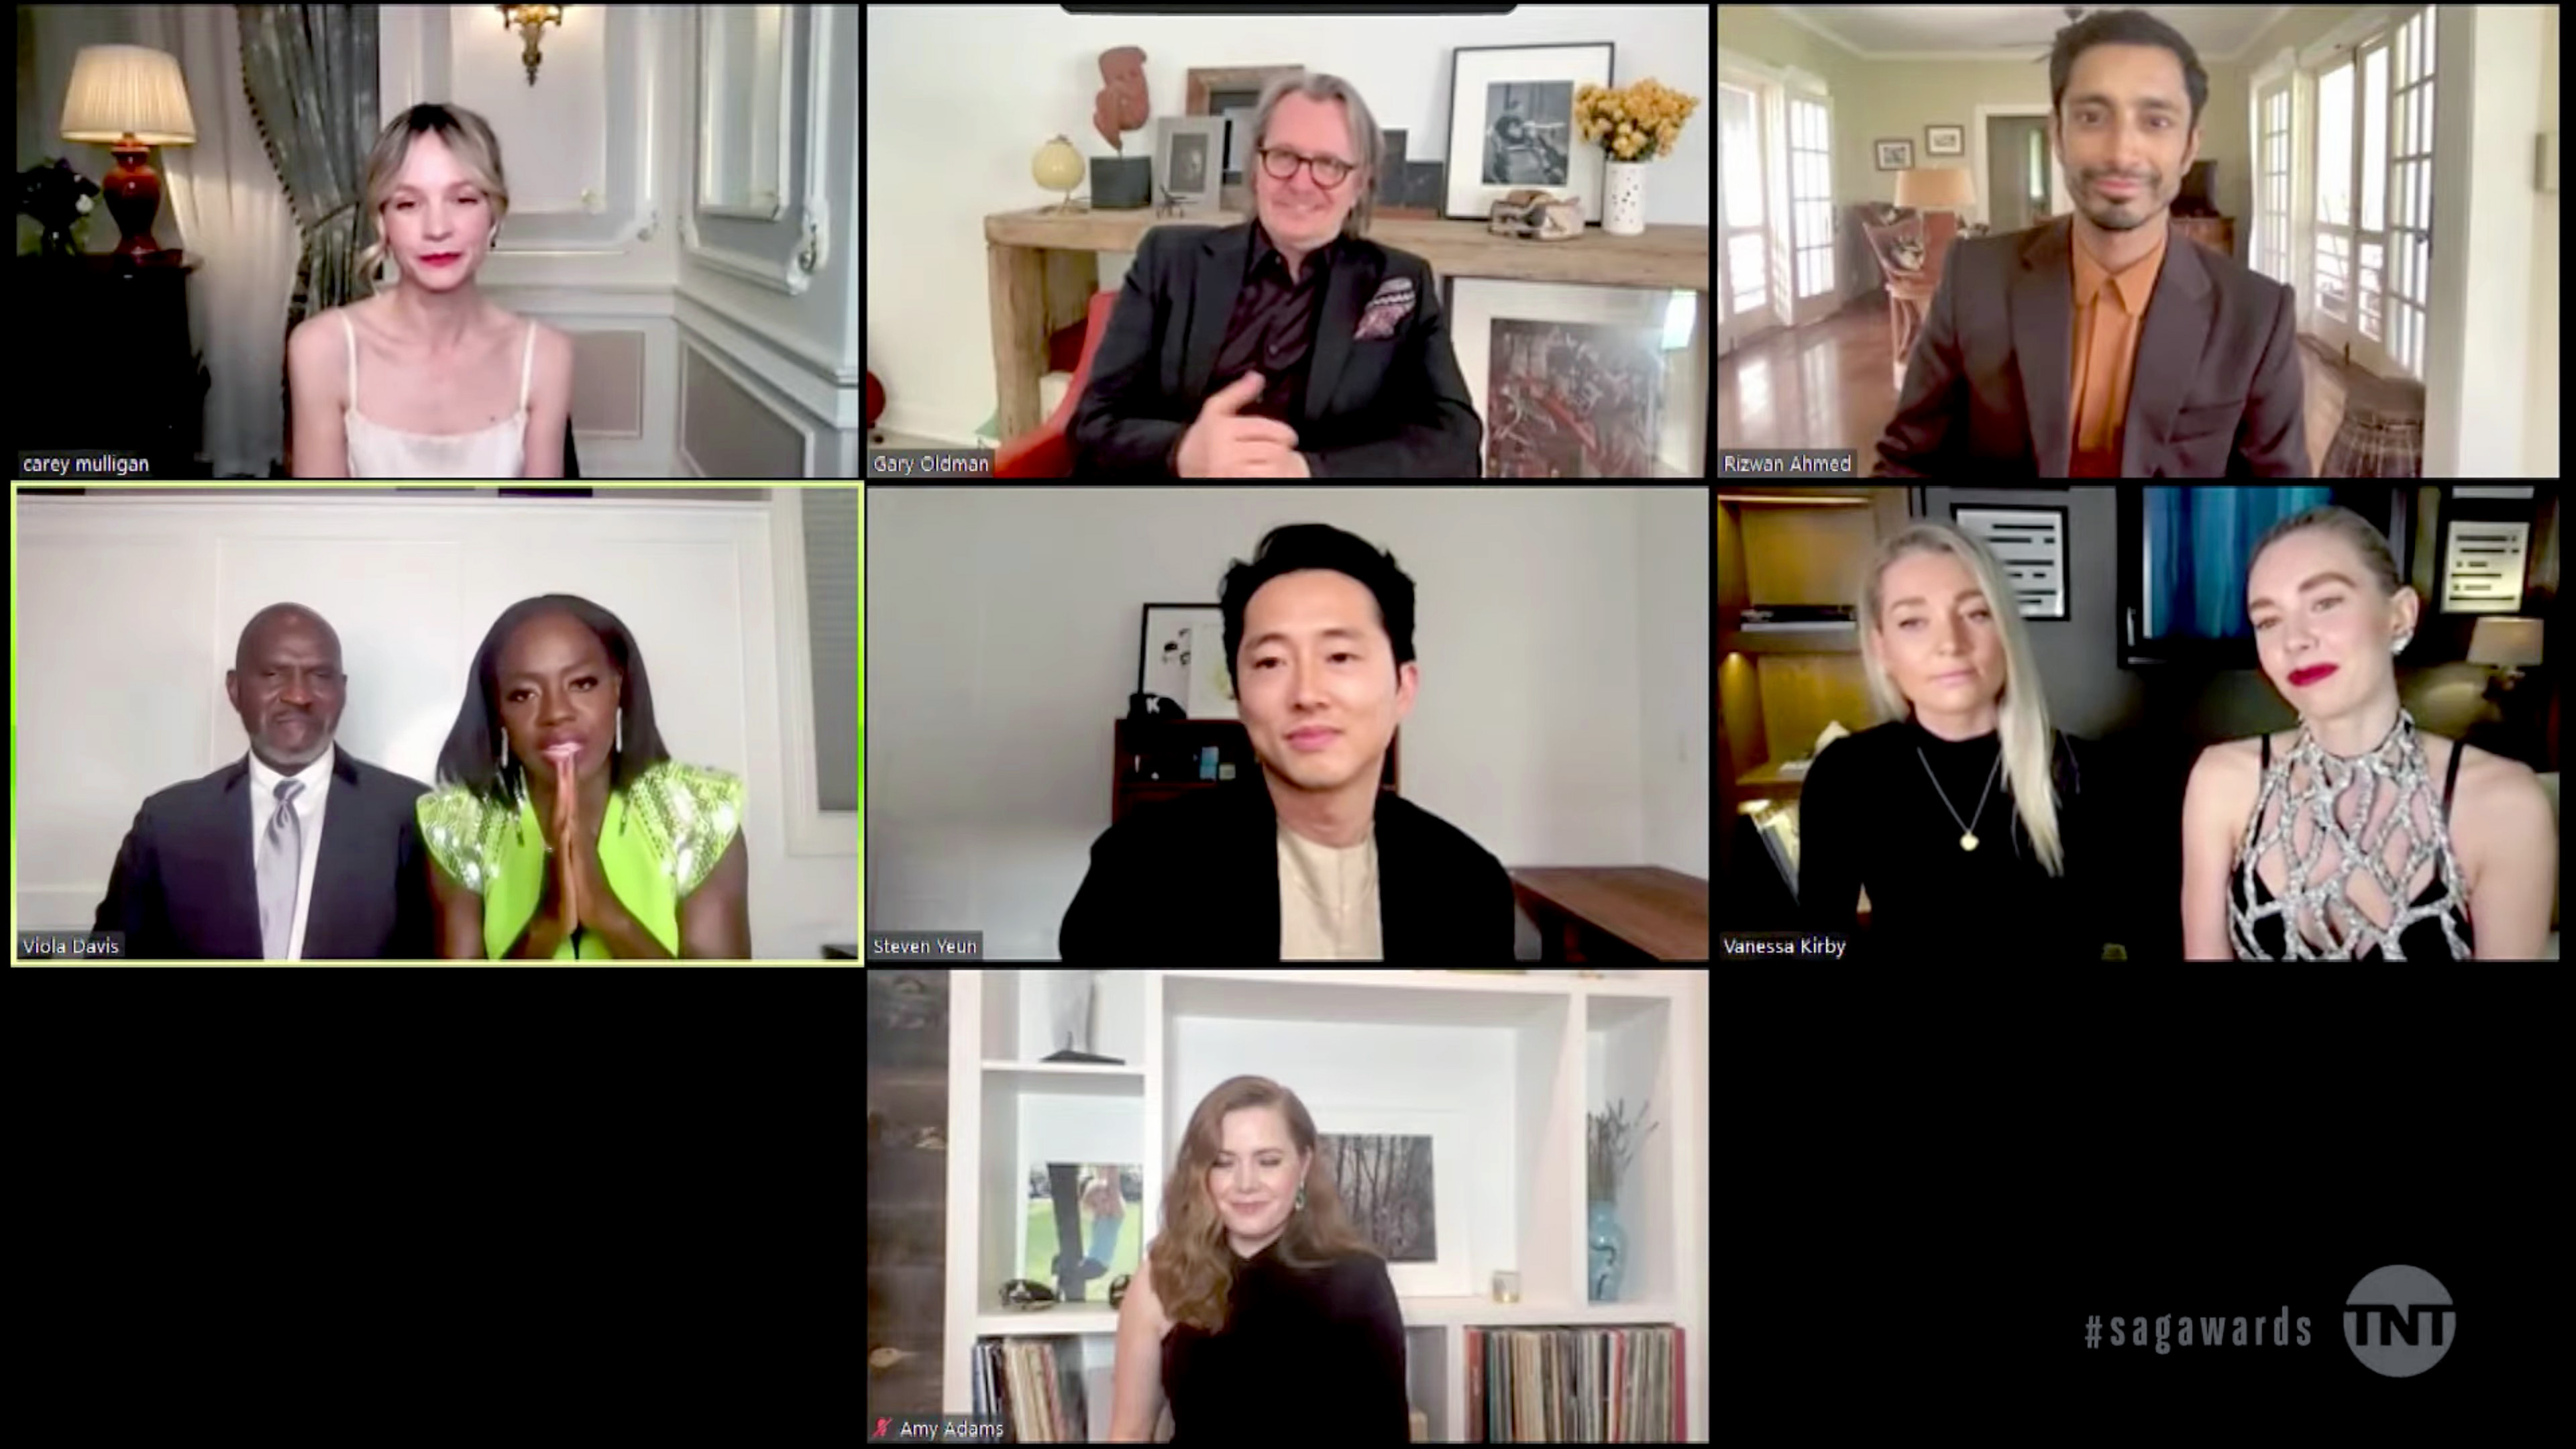 VARIOUS CITIES - APRIL 04: (L-R) In this screengrab released on April 4, 2021, Carey Mulligan, Gary Oldman, Riz Ahmed, Julius Tennon, Viola Davis, Steven Yeun, Vanessa Kirby, and Amy Adams speak during the 27th Annual Screen Actors Guild Awards on April 04, 2021. (Photo by 27th Annual SAG Awards/Getty Images for WarnerMedia)